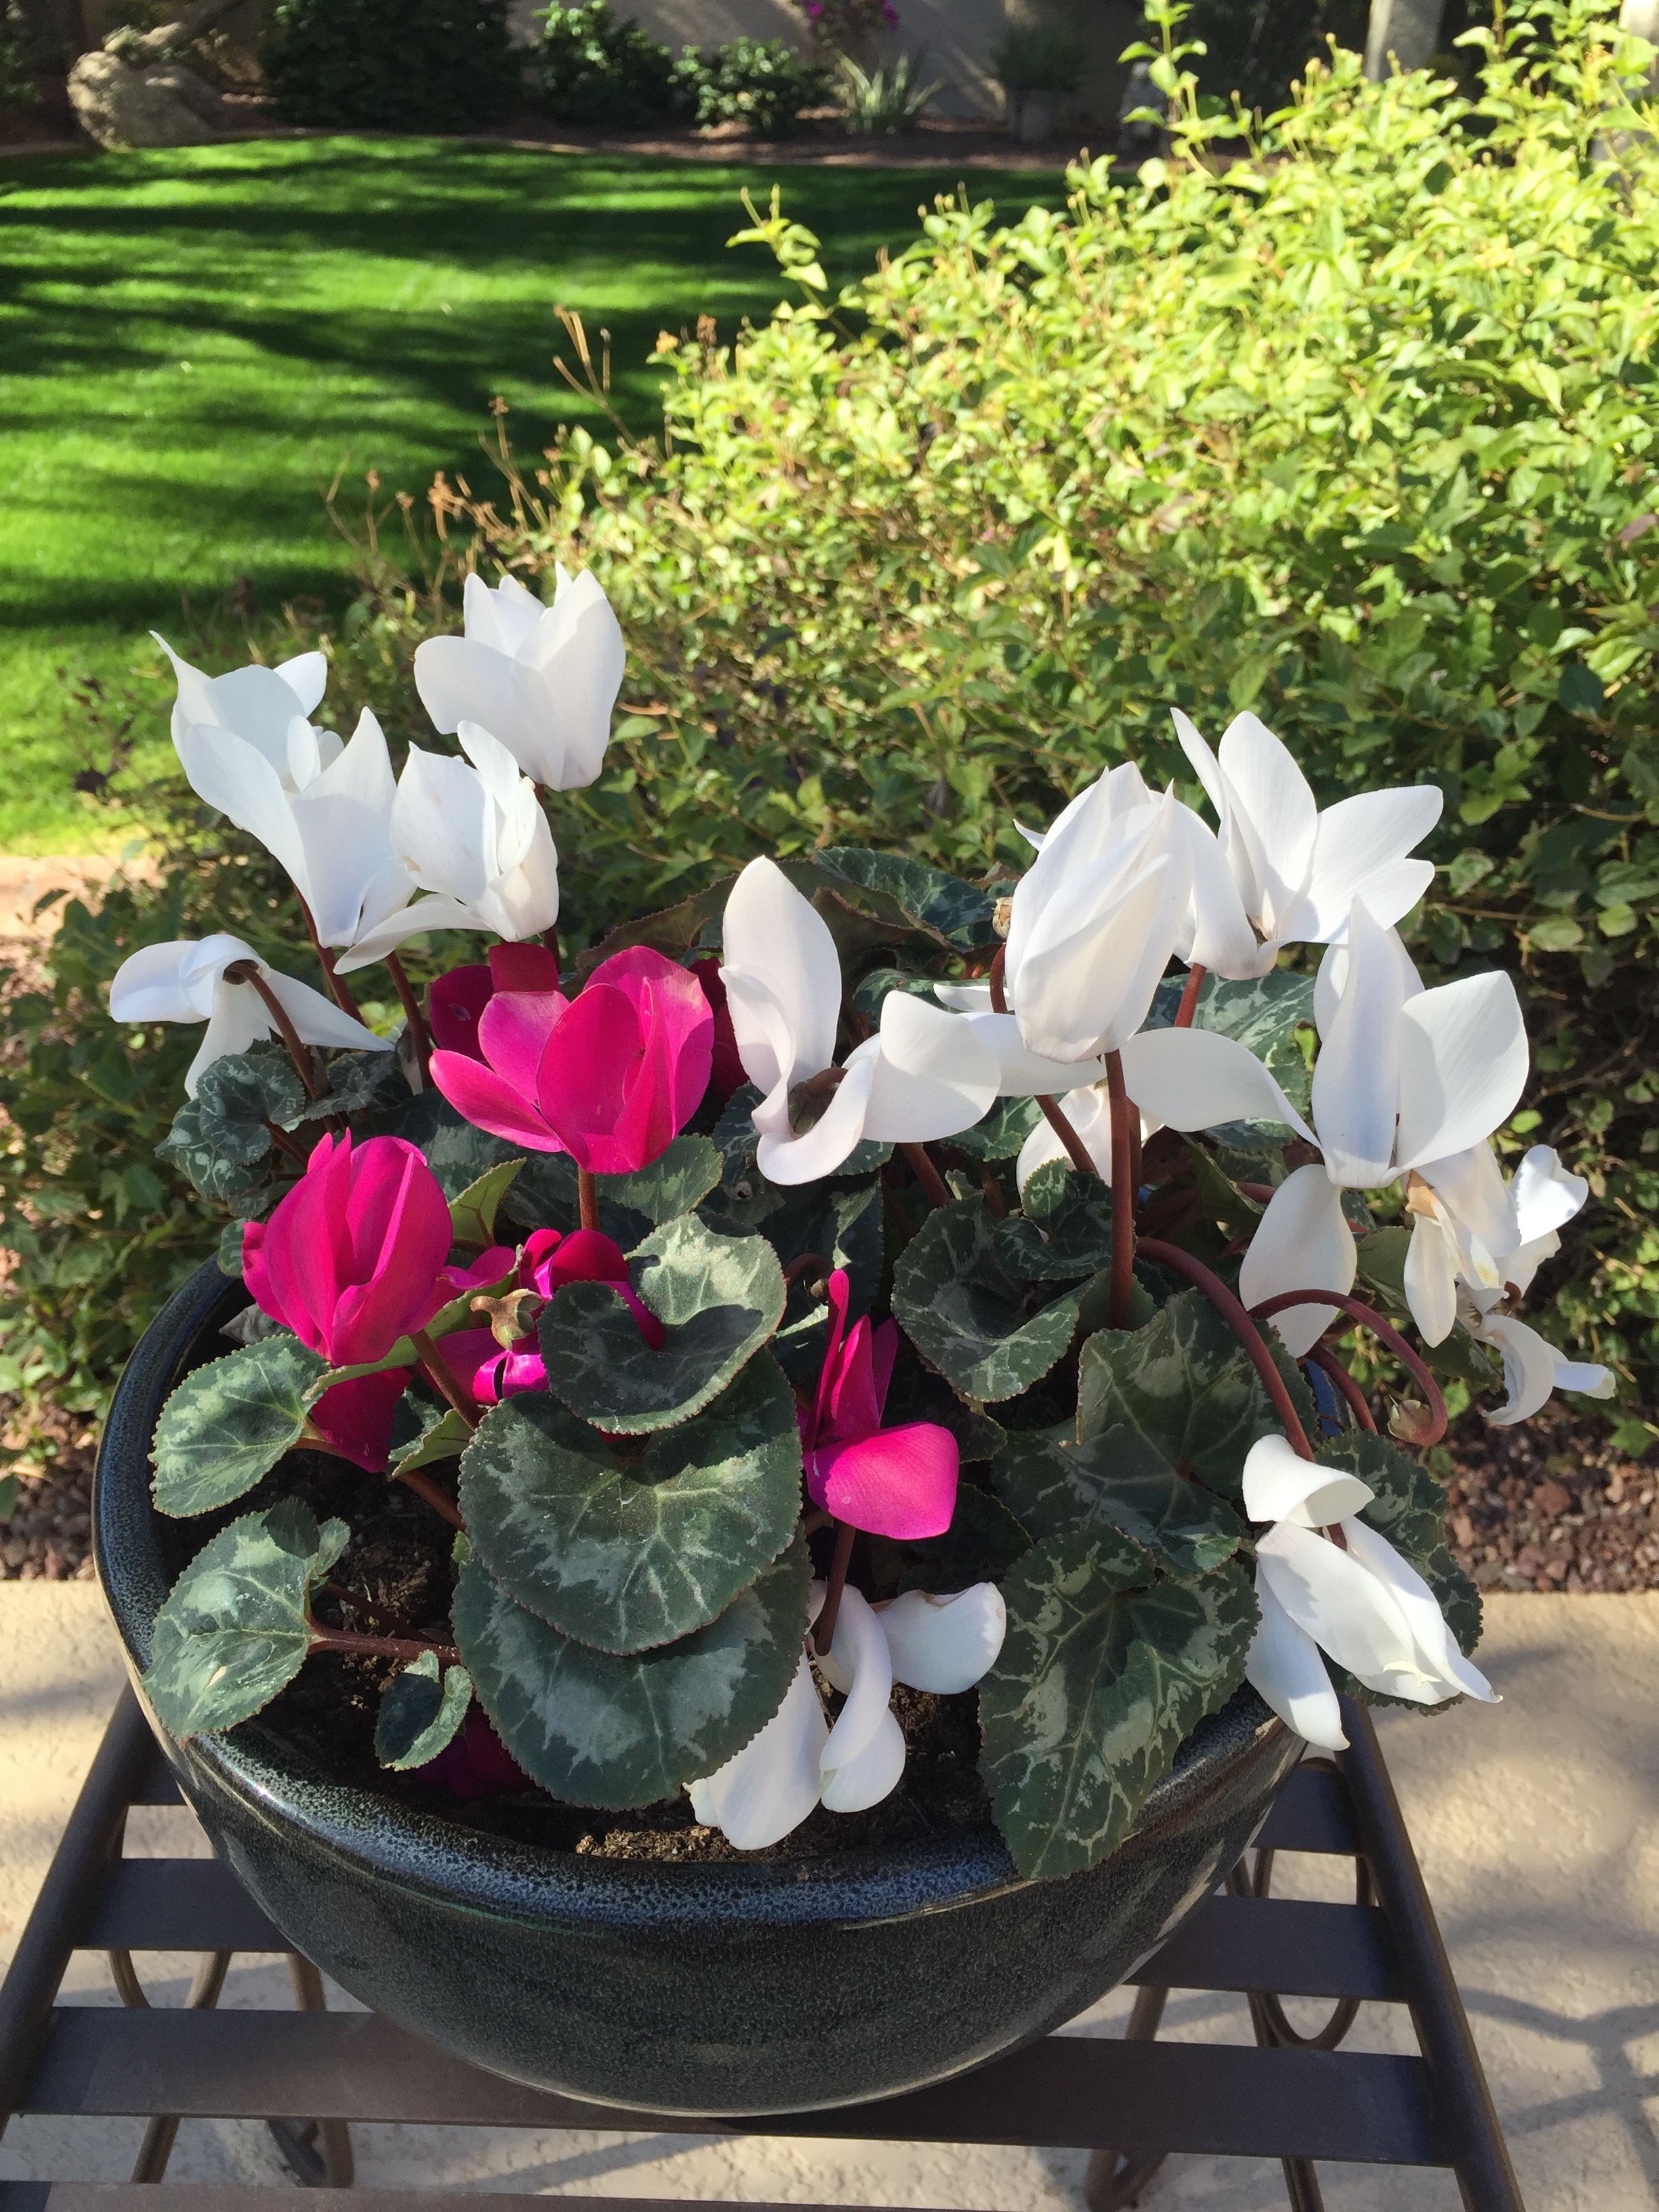 Cyclamen Plant Care Growing Tips Cutting Planting: Pin By Houseplant 411 On Plant Care Questions